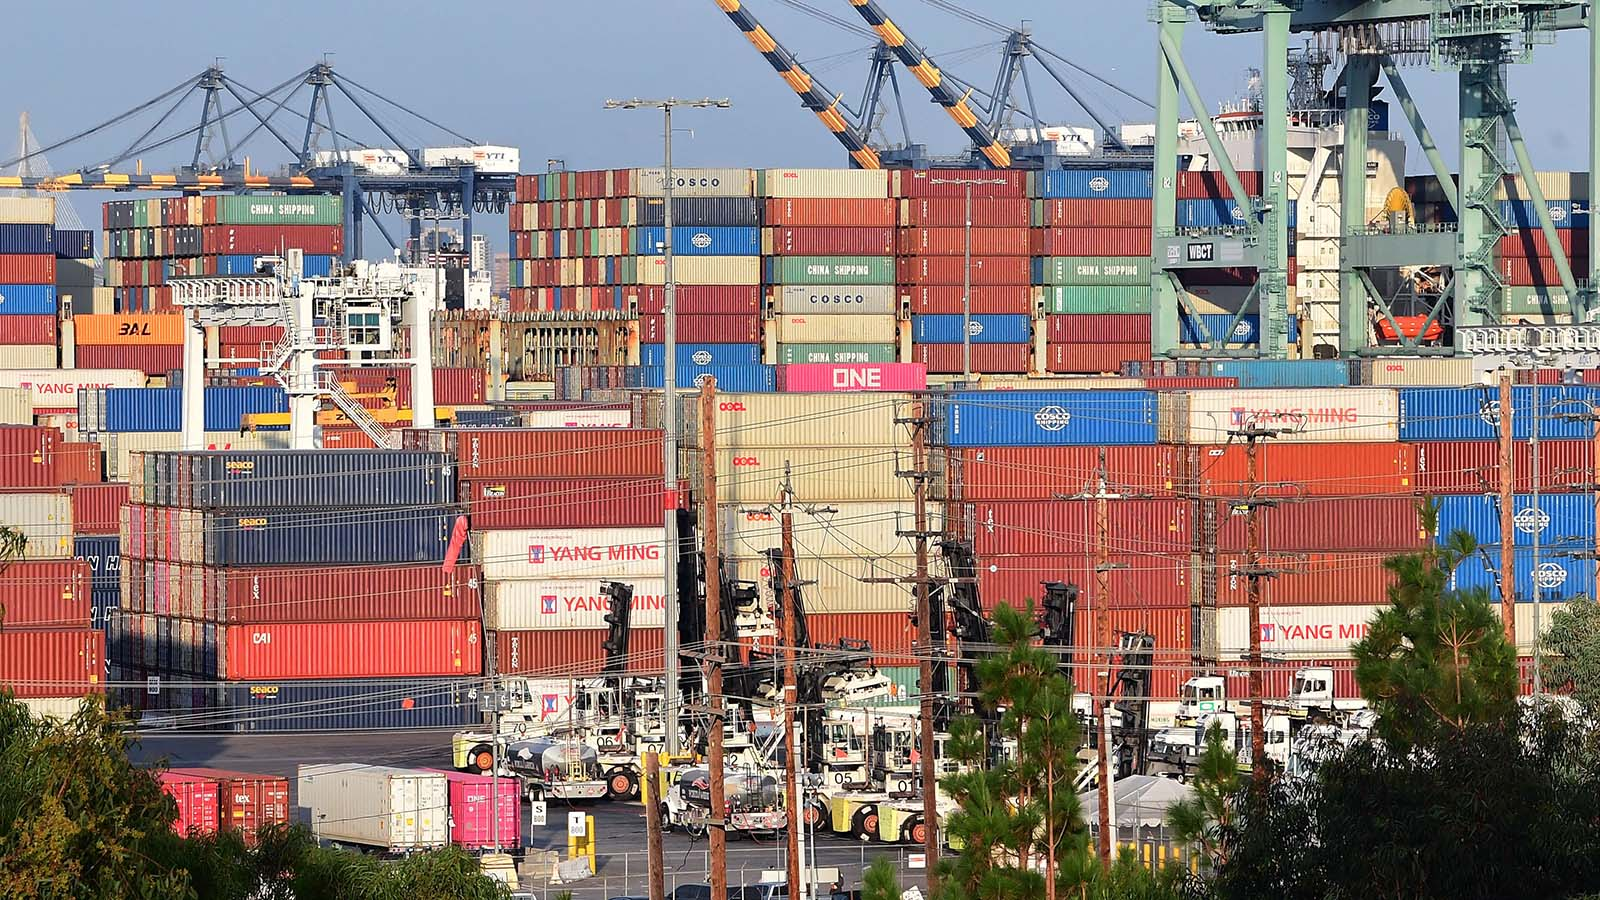 Containers stacked high are seen at the Port of Los Angeles on September 28, 2021 in Los Angeles, California